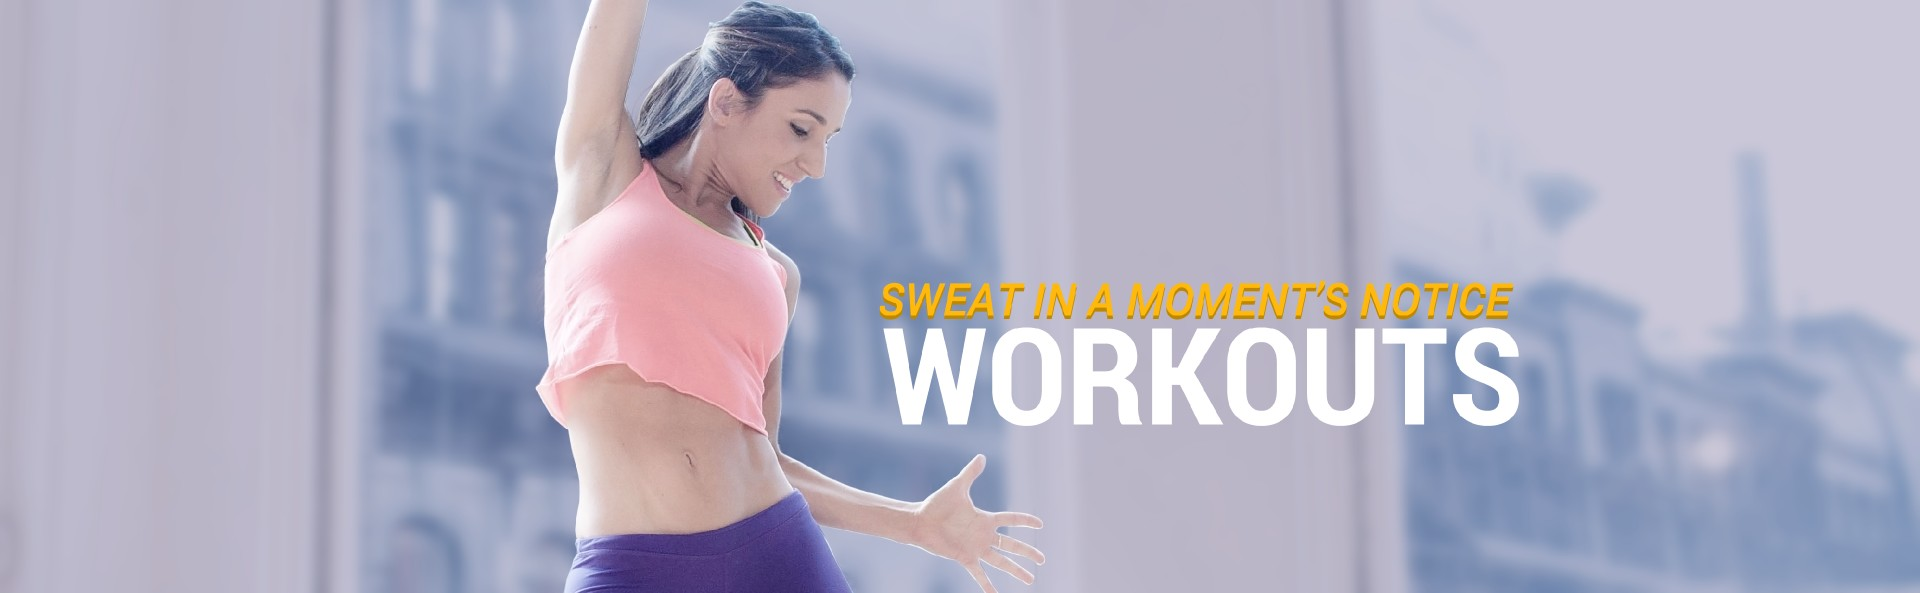 Workouts_browse_header2